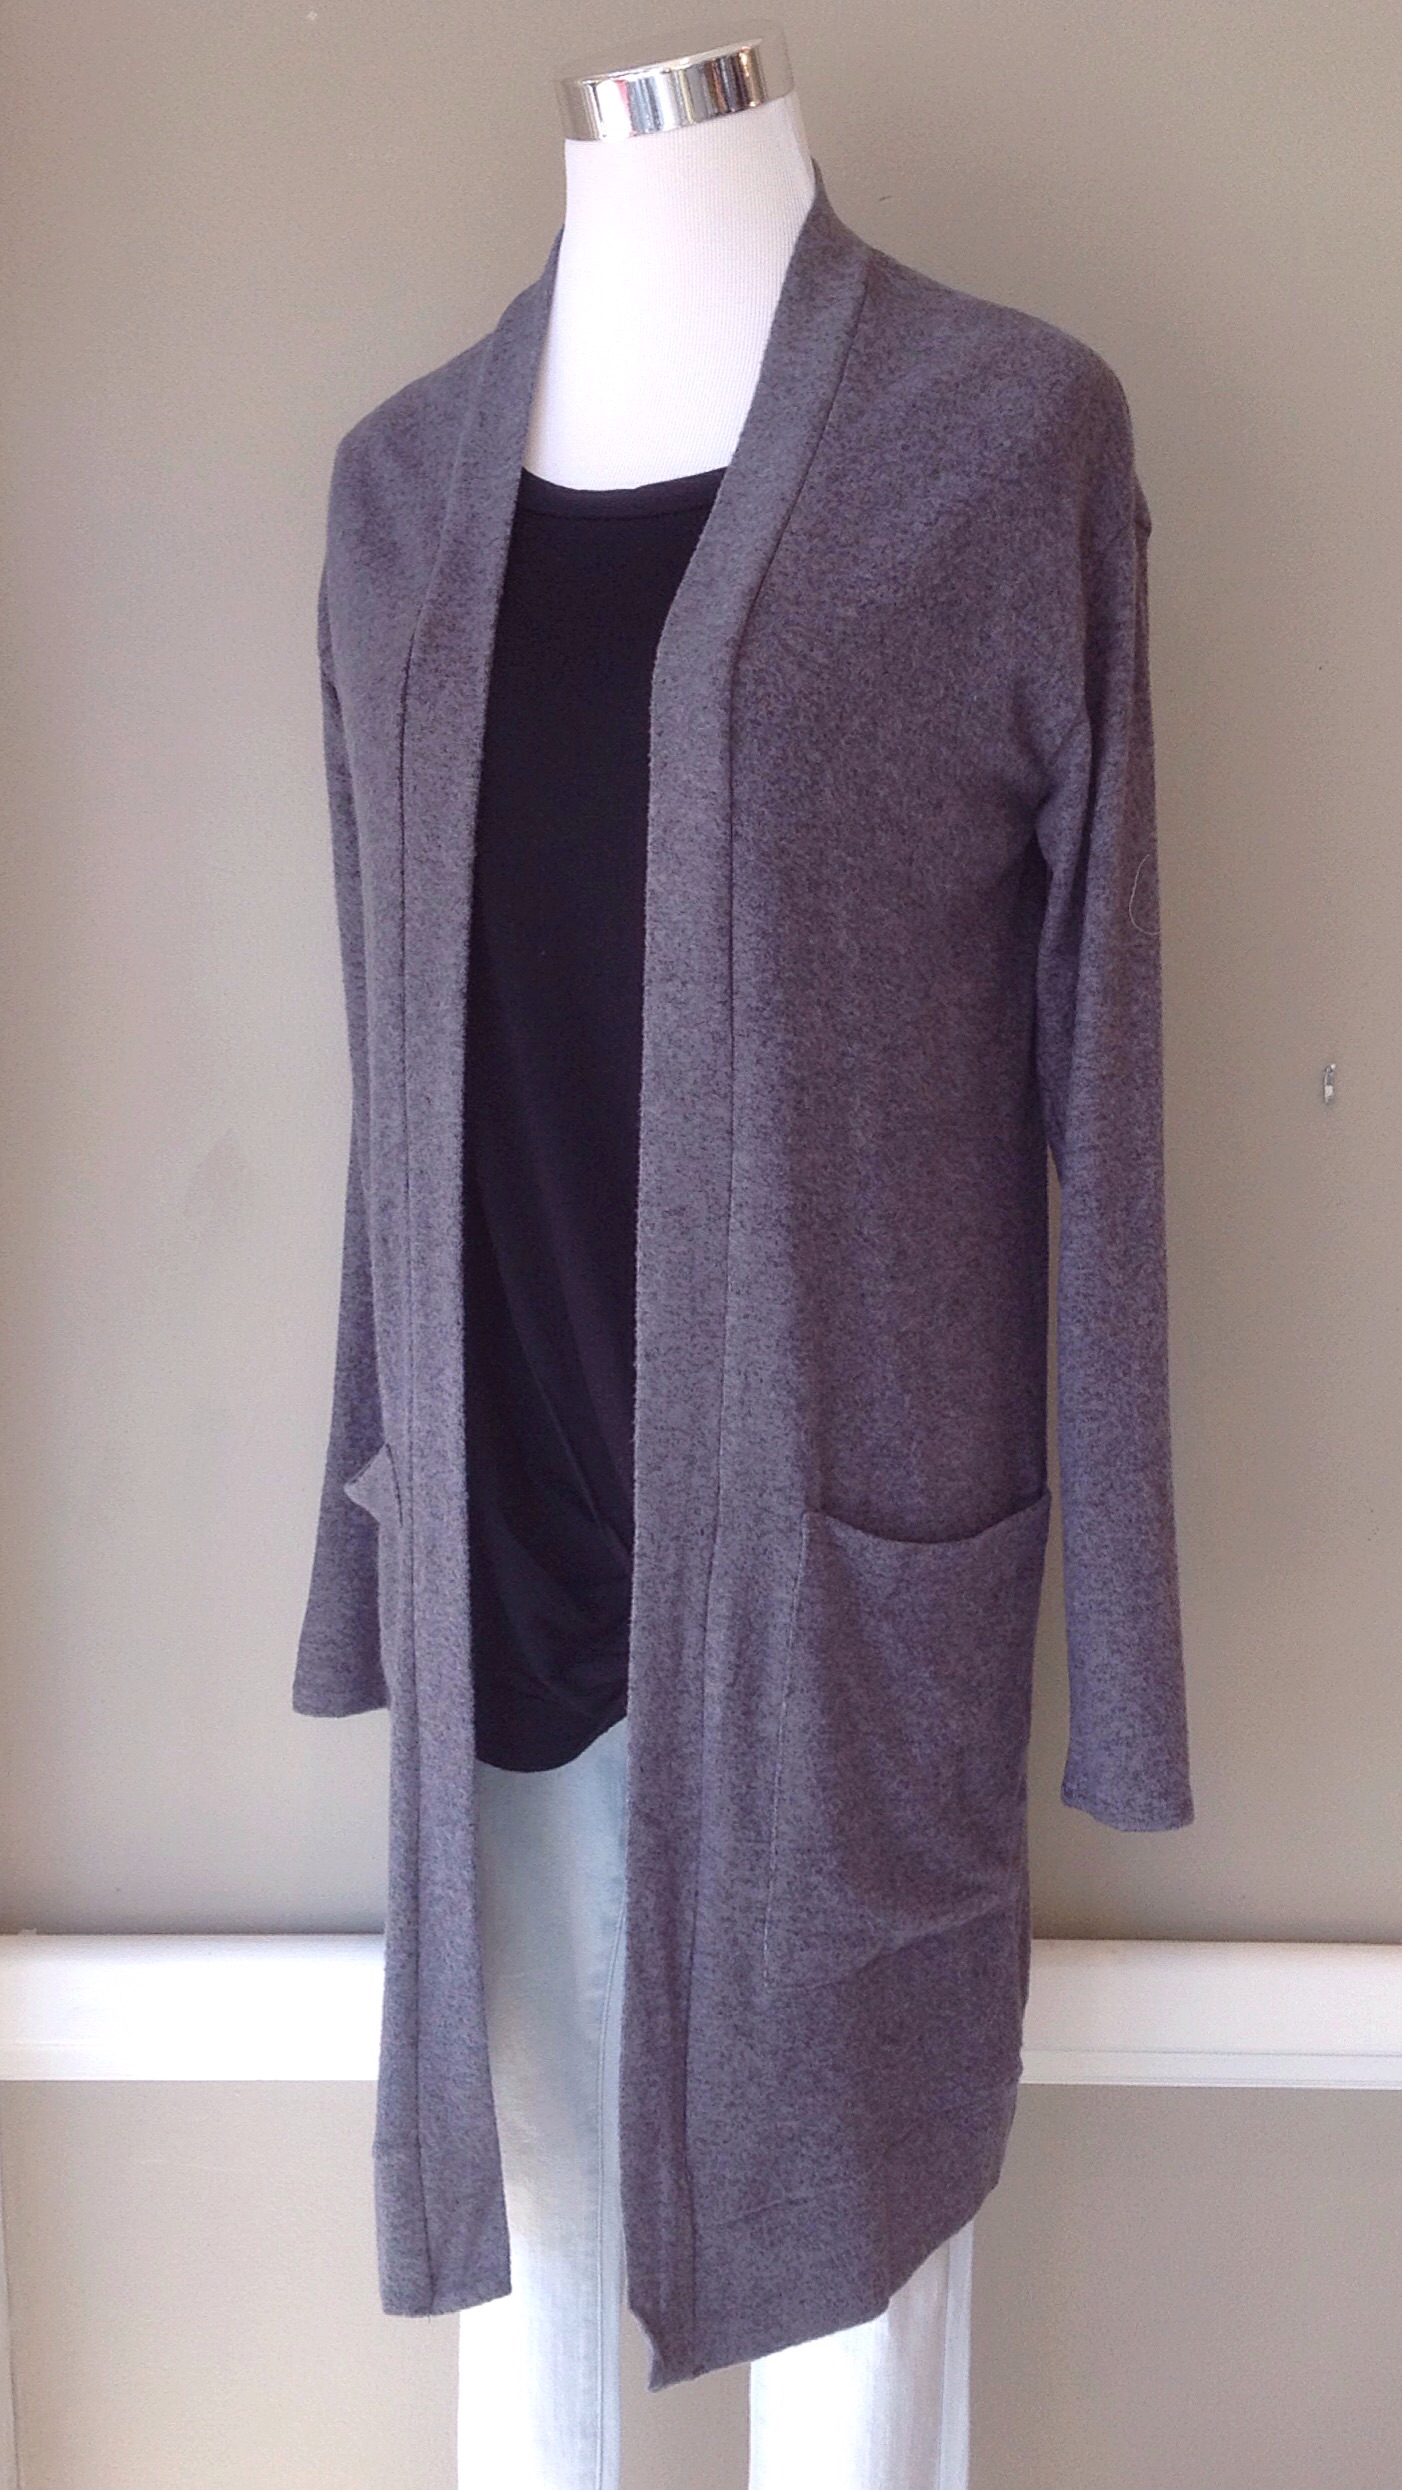 Bestselling Cherish sweater knit cardigan in charcoal, $34